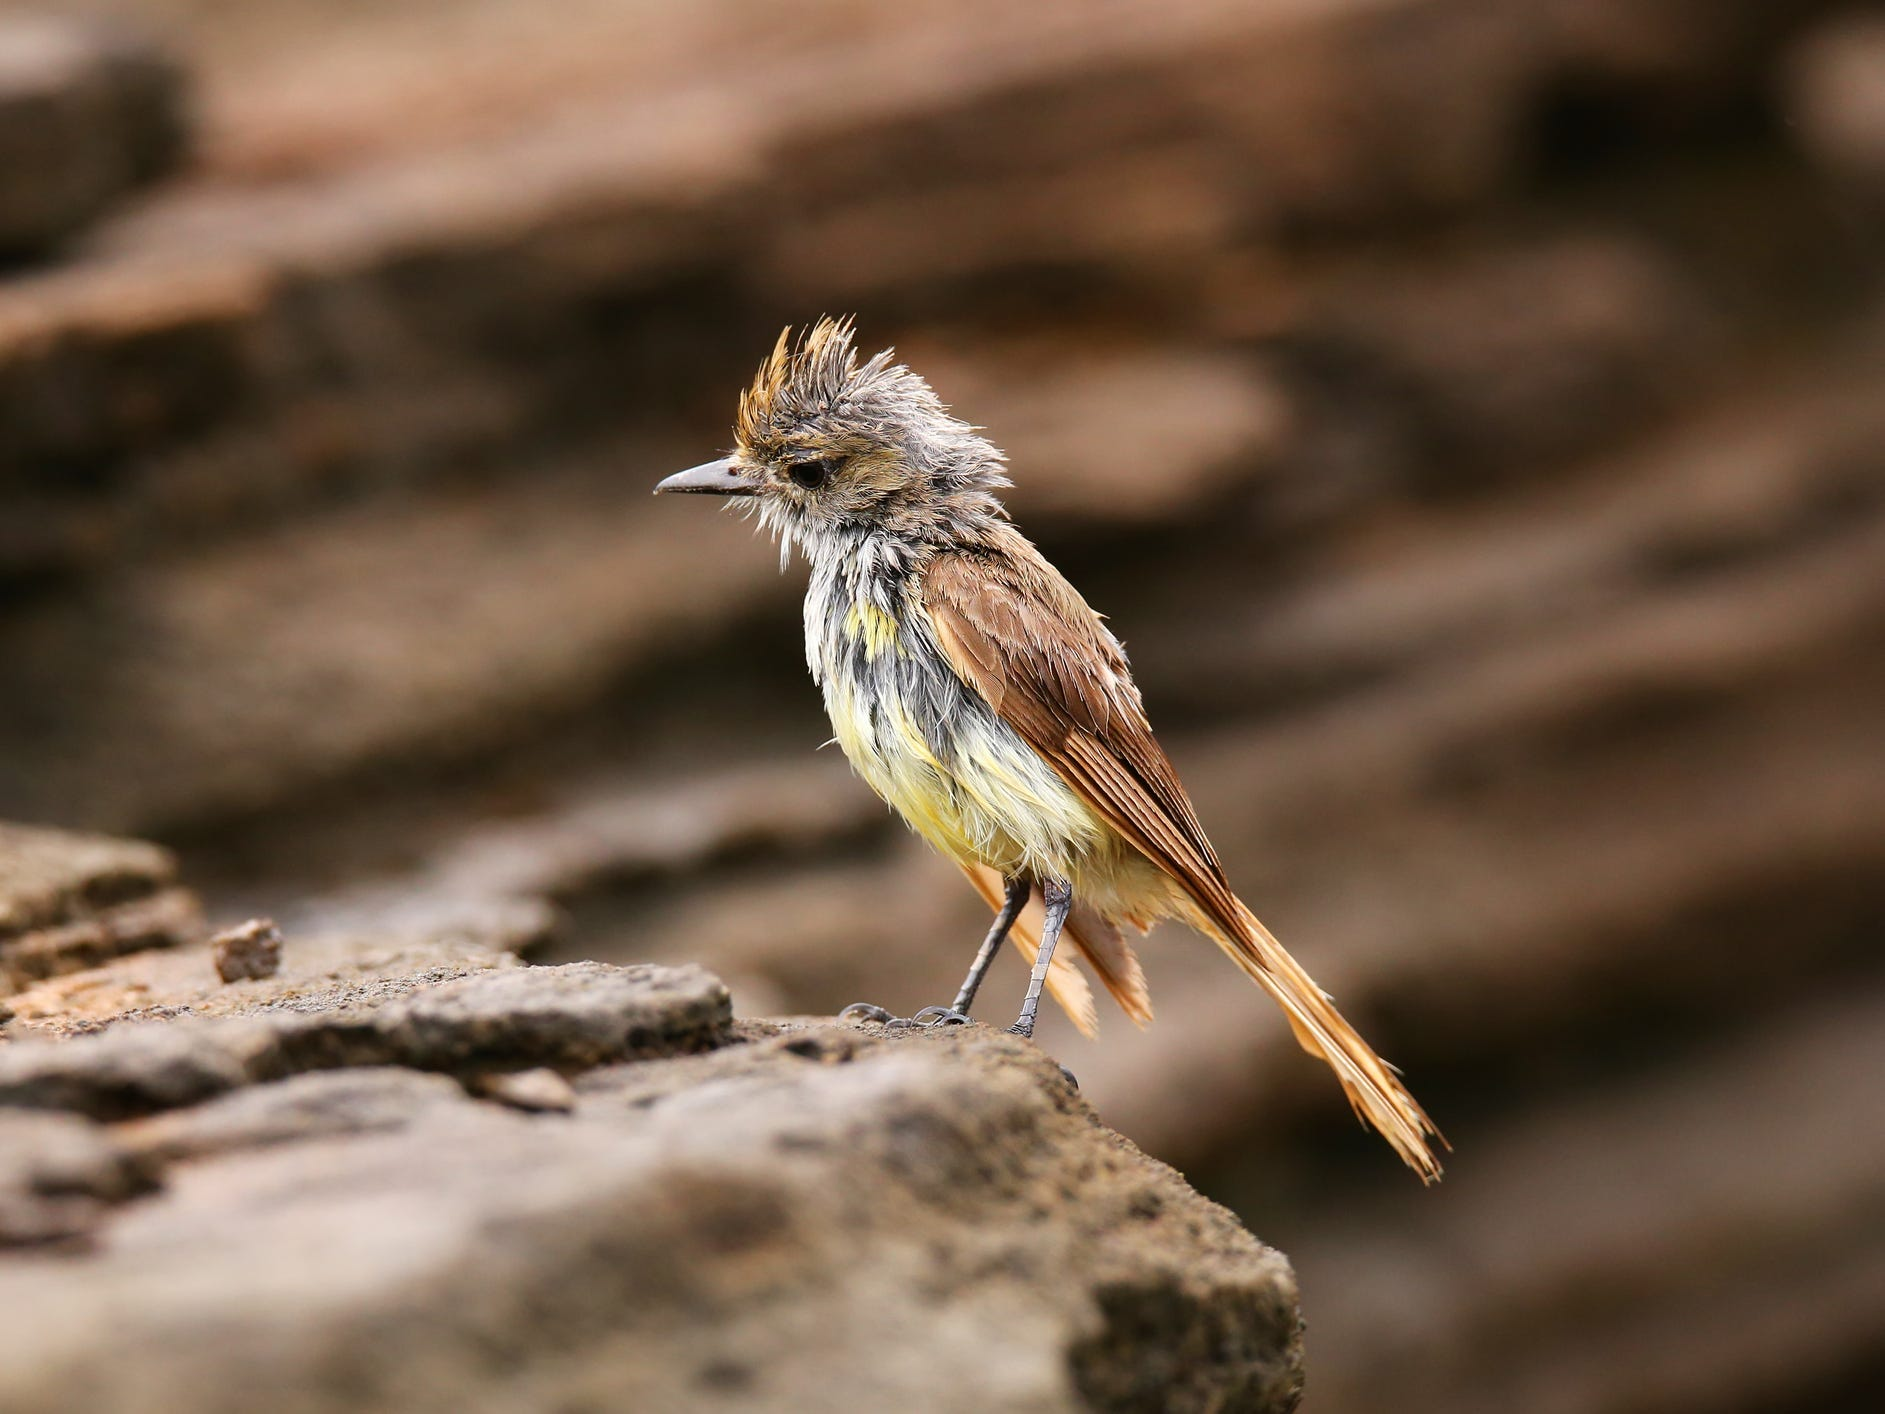 A flycatcher in the Galapagos Islands, Ecuador.